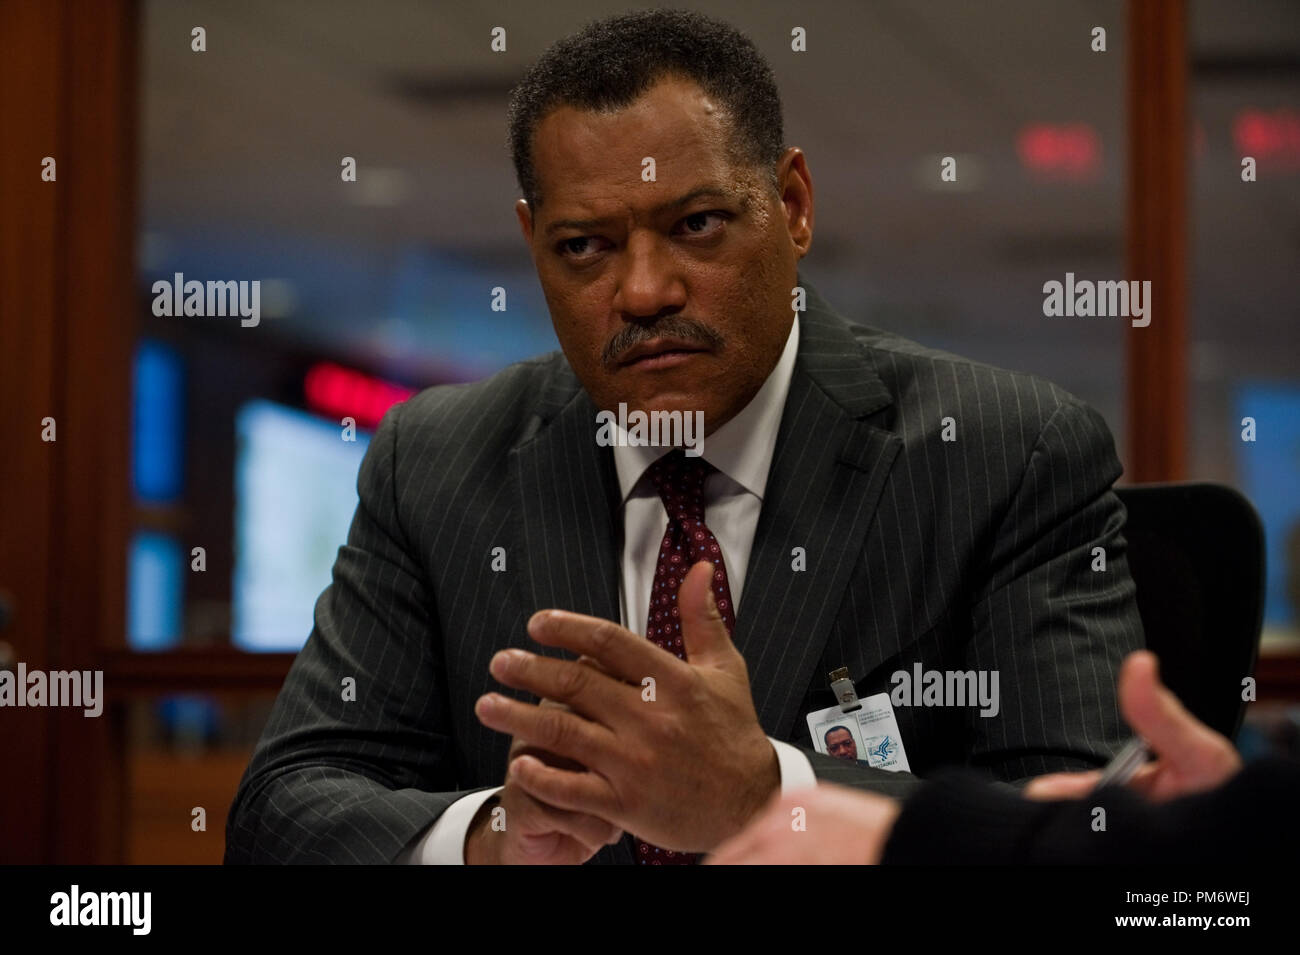 Laurence Fishburne As Dr Ellis Cheever In The Thriller Contagion A Warner Bros Pictures Release Stock Photo Alamy